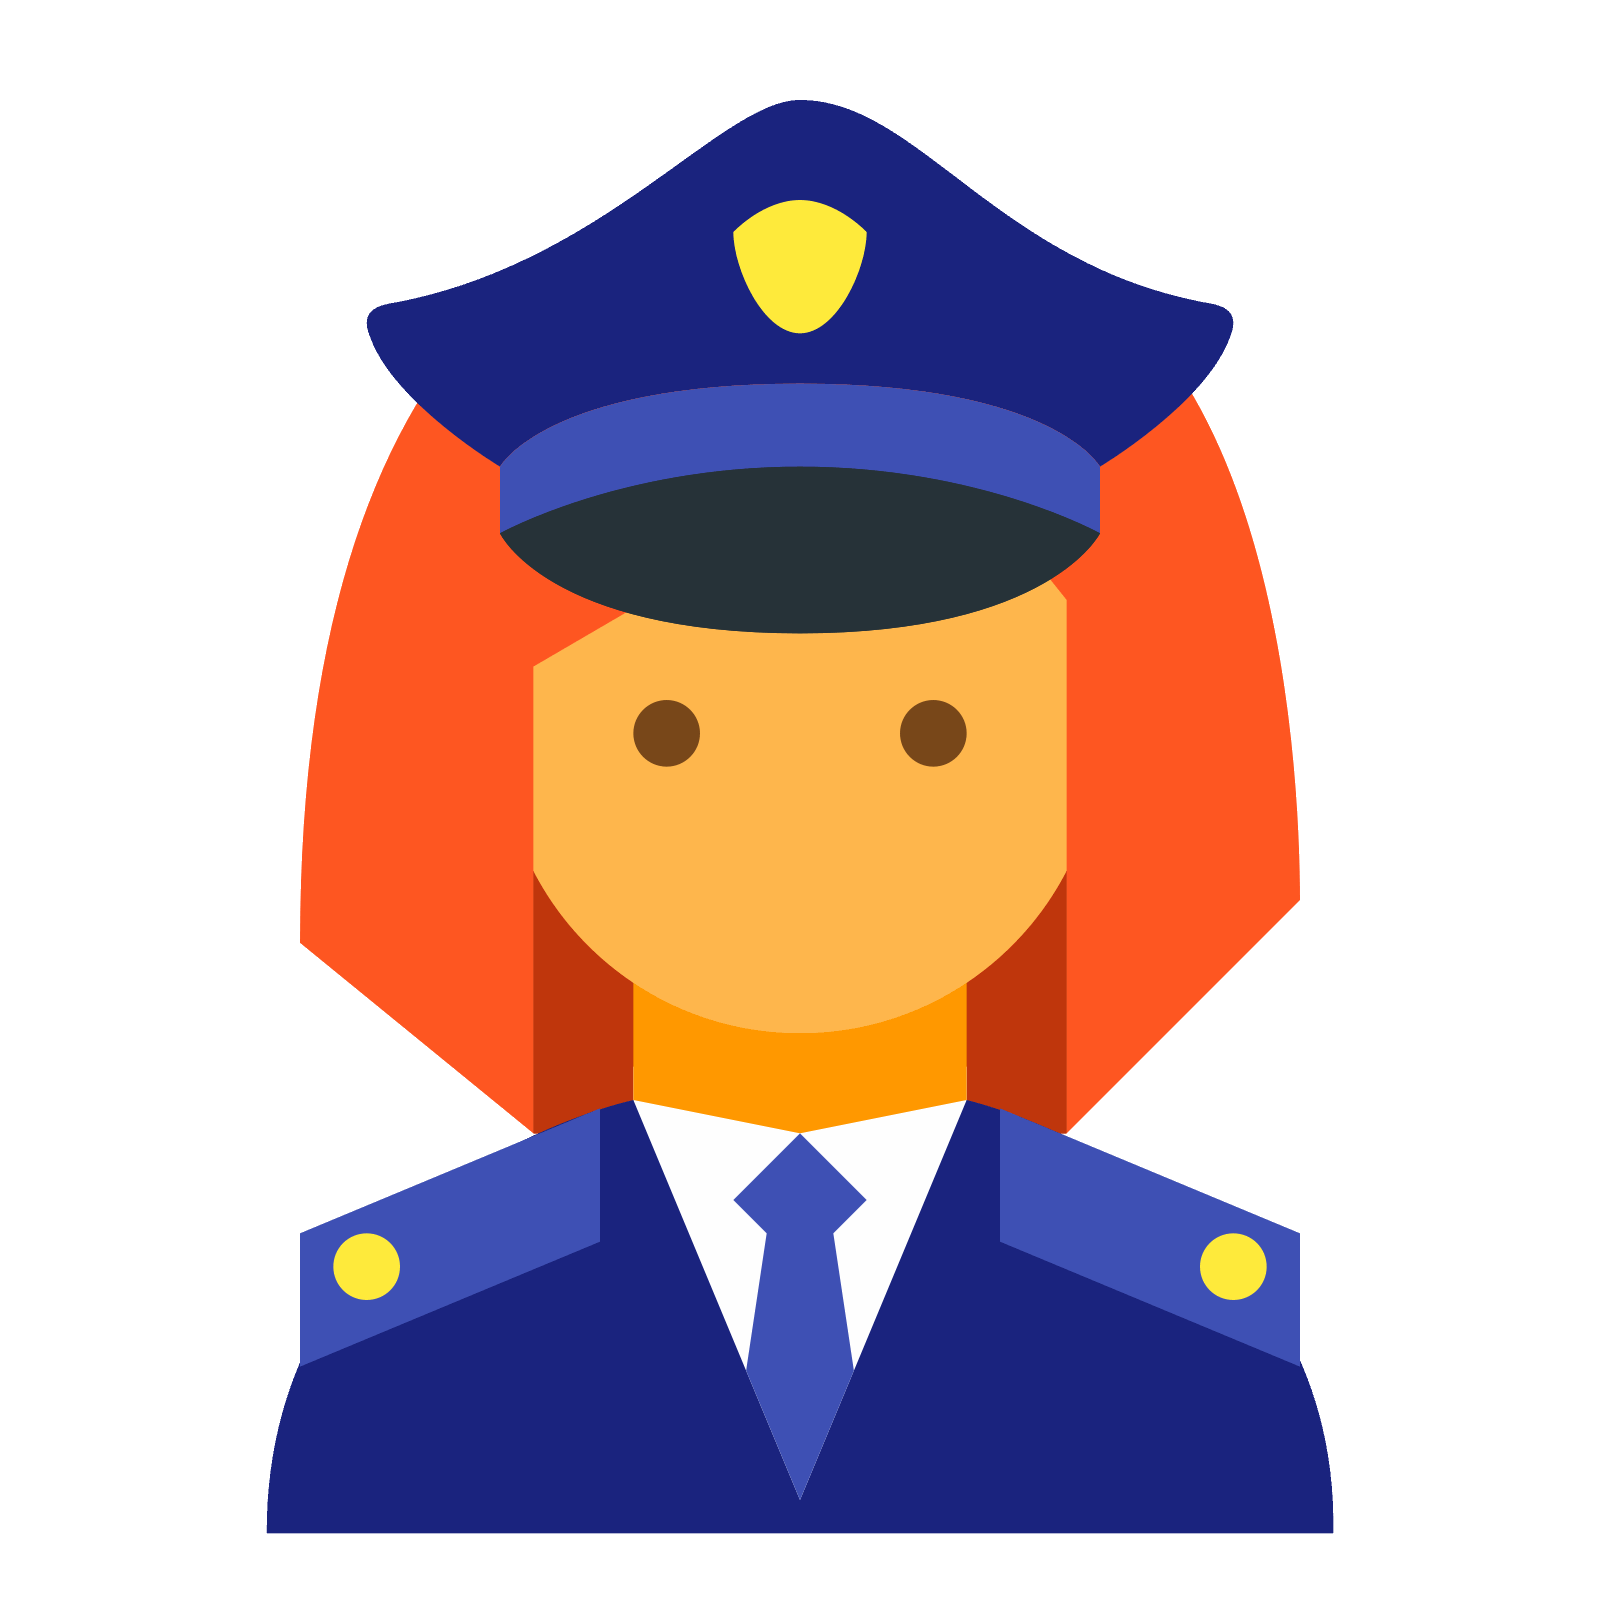 Female icono descarga gratuita. Policeman clipart police mobile